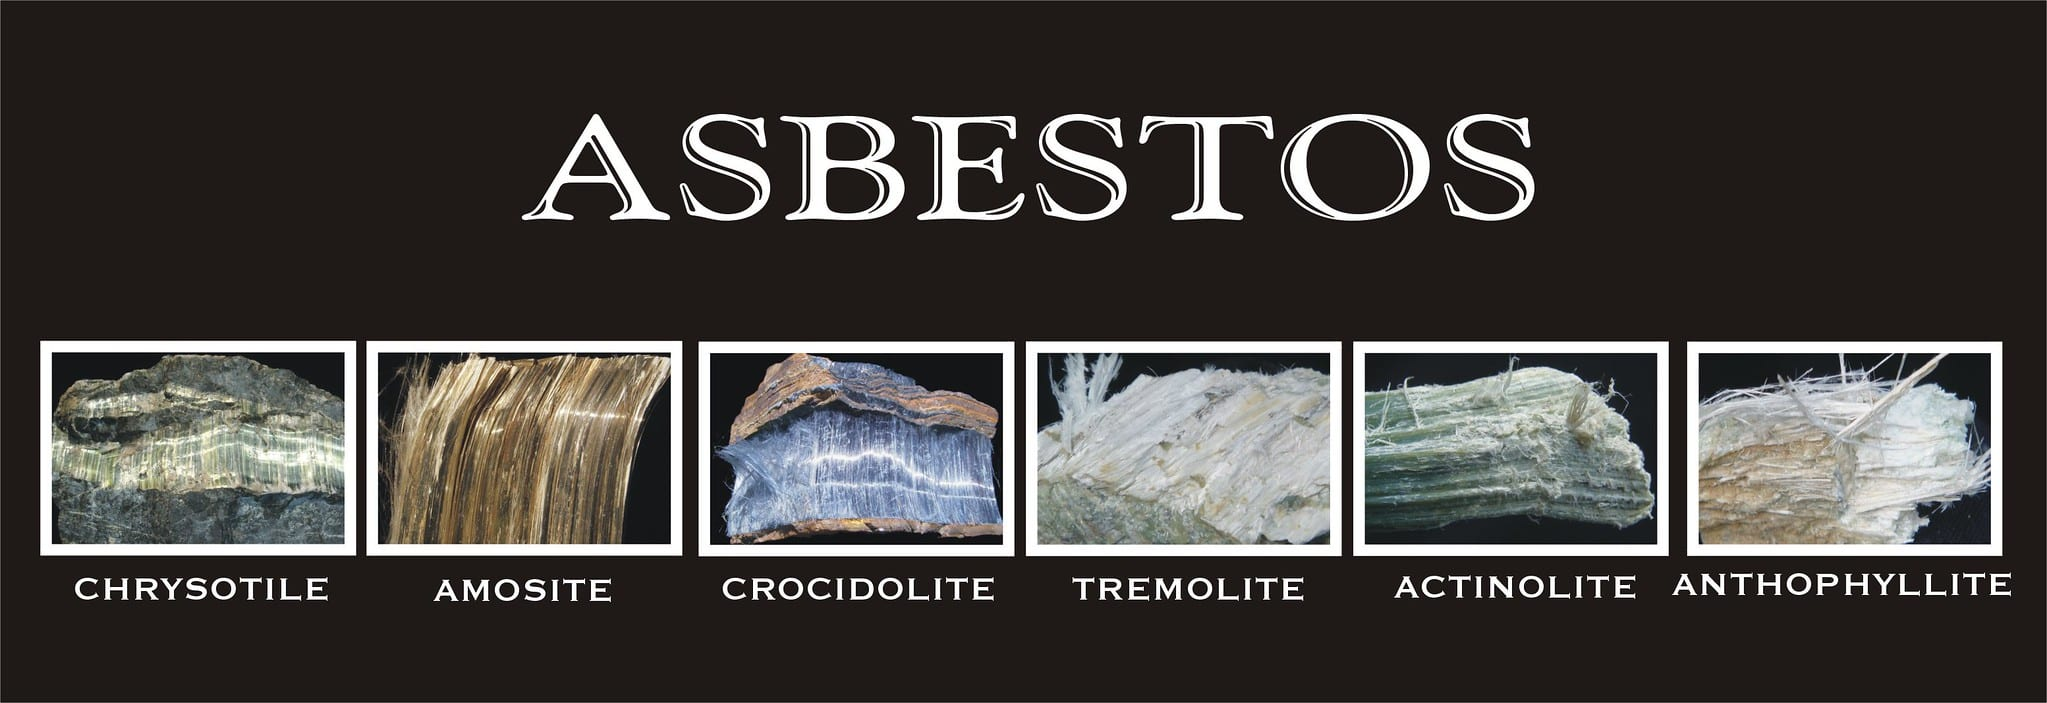 Six fibrous mineral ores representing asbestos; image by Asbestorama, via Flickr, CC BY-ND 2.0, no changes.